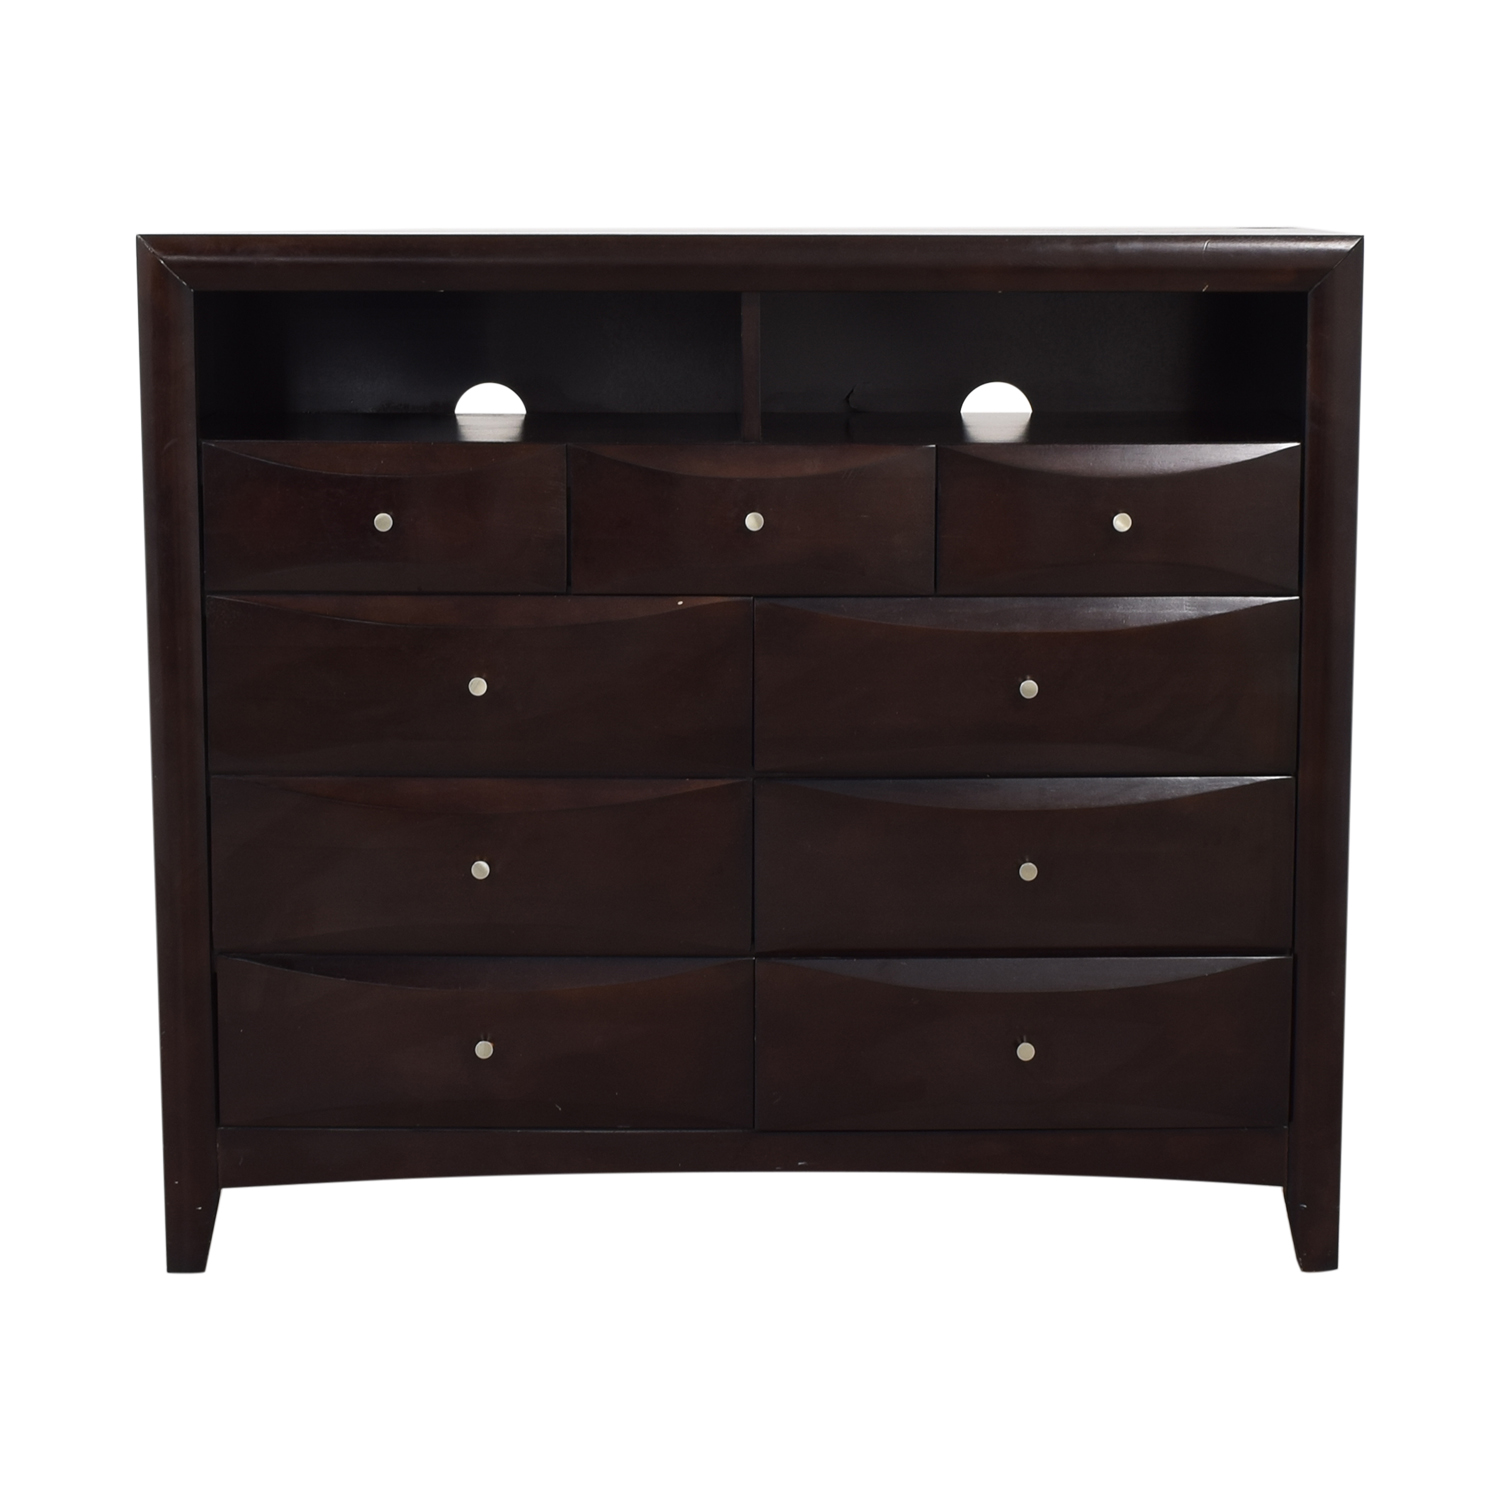 Coaster Fine Furniture Media Unit with Dresser Drawers / Dressers